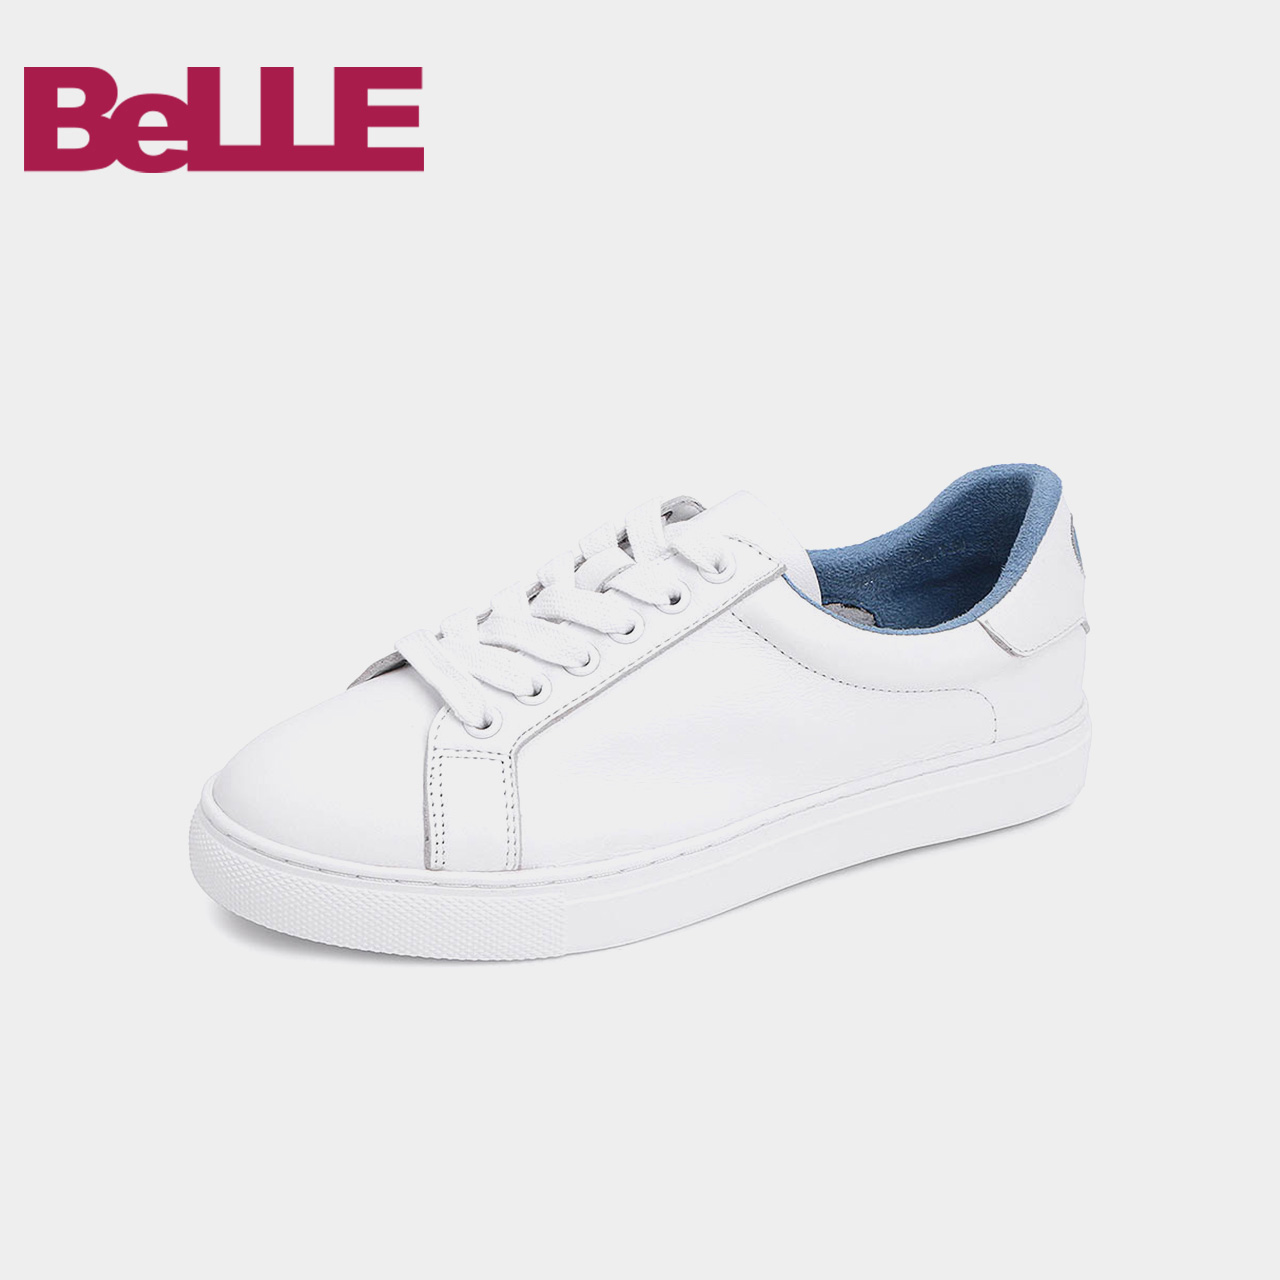 S9M1DCM8 Cowhide Flat Bottom Fashion Coloured Casual Single Shoes in Baili Small White Women's Board Shoes Shopping Mall